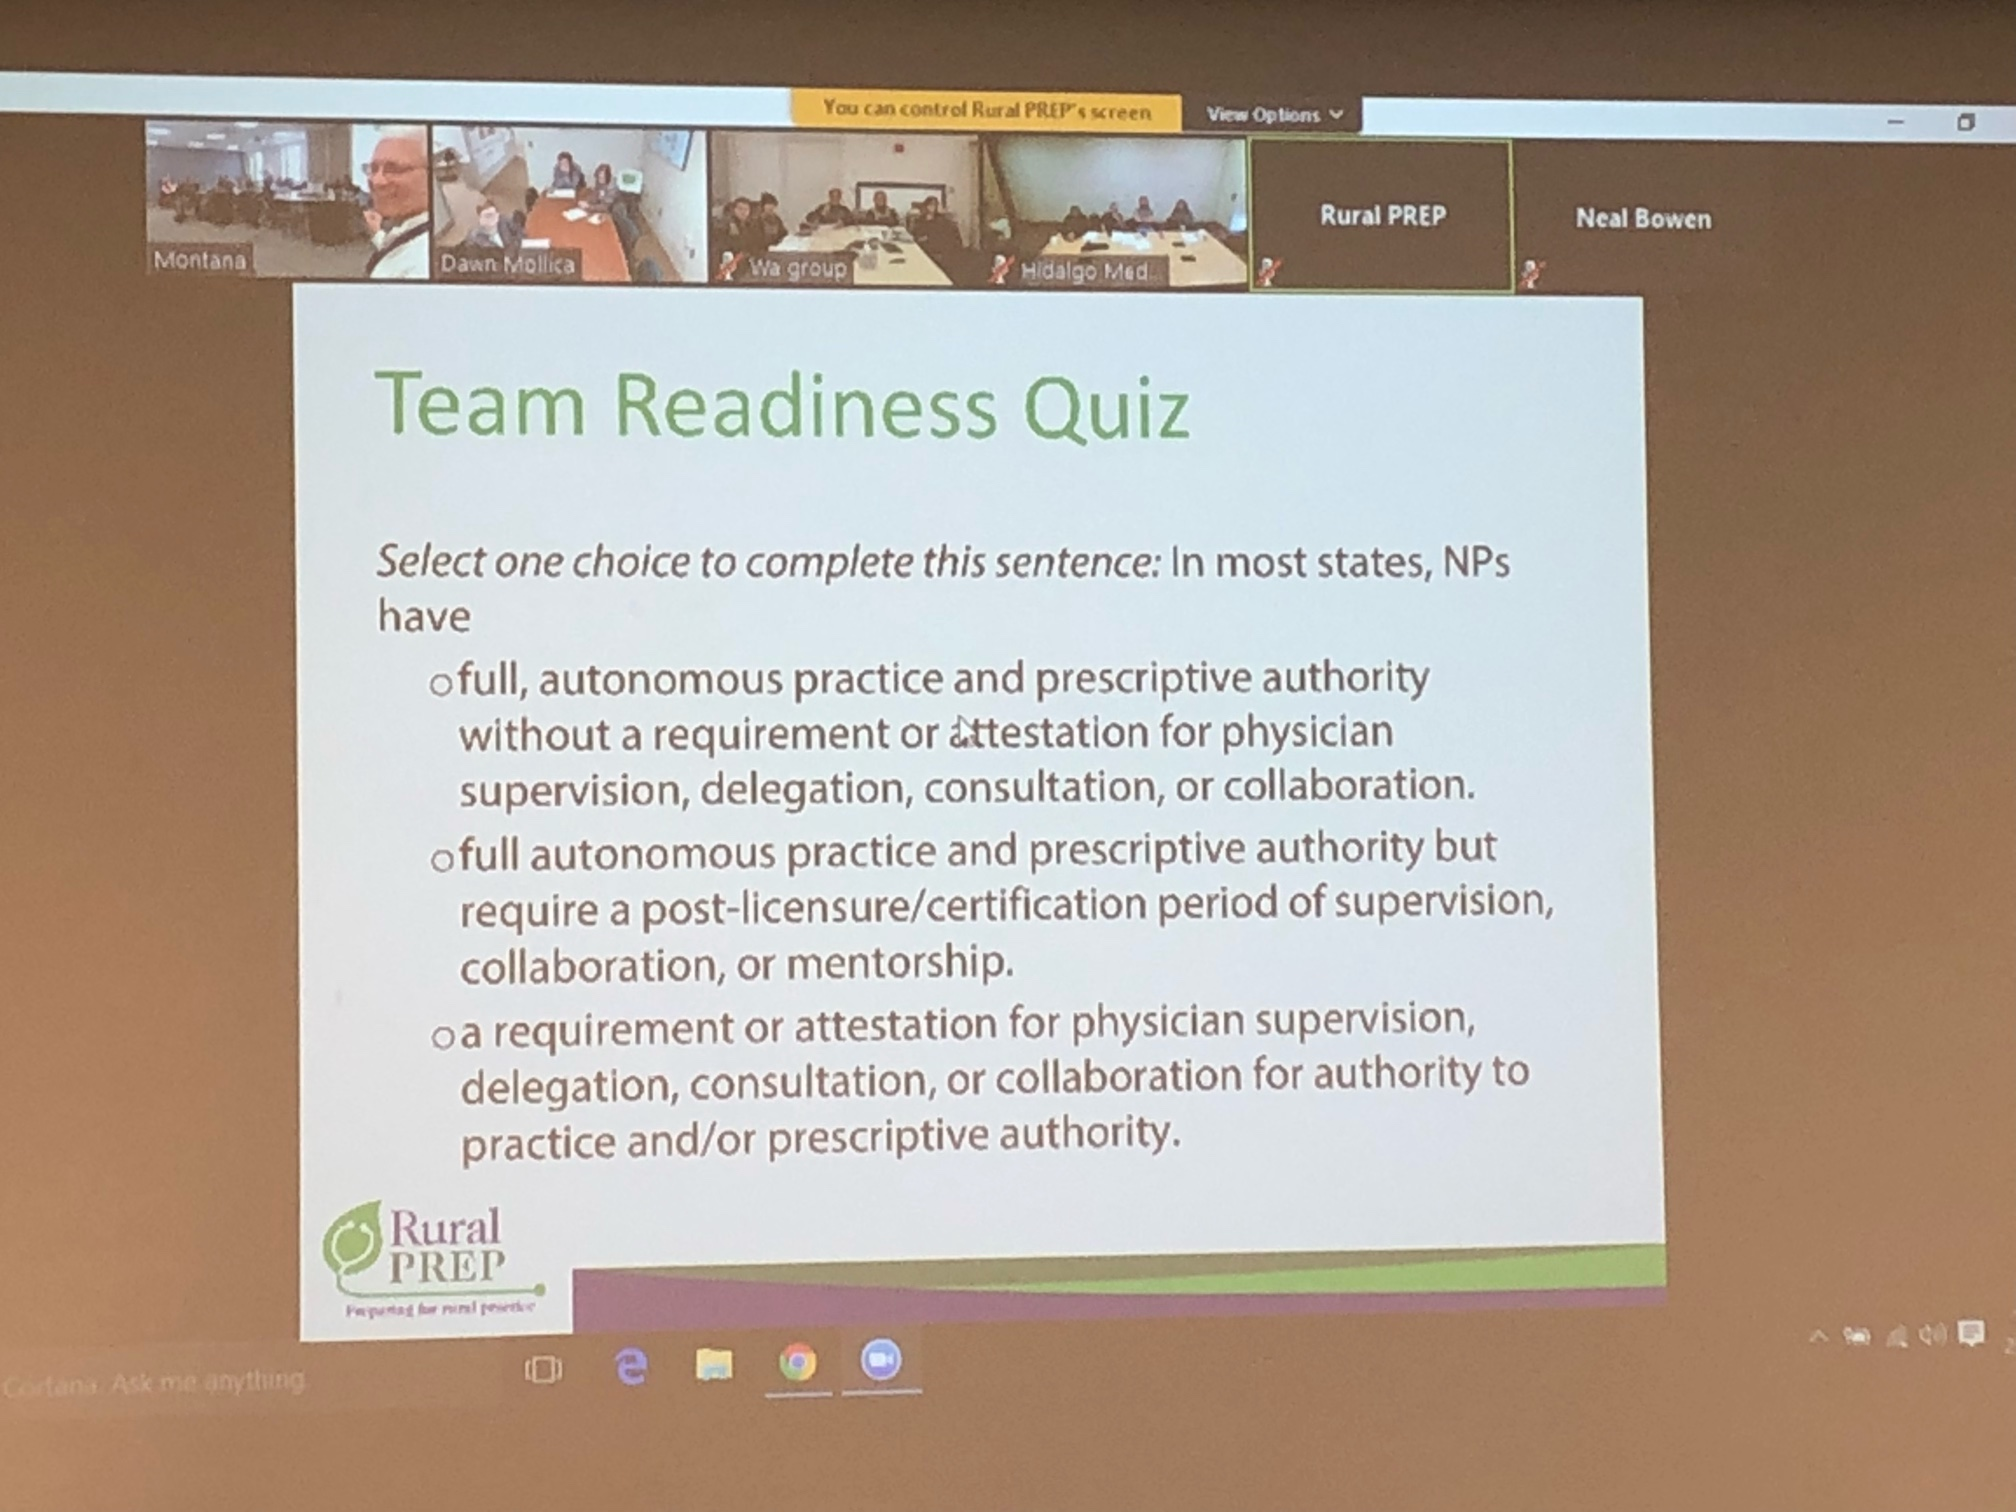 Slide of the Team Readiness quiz with multiple choice questions